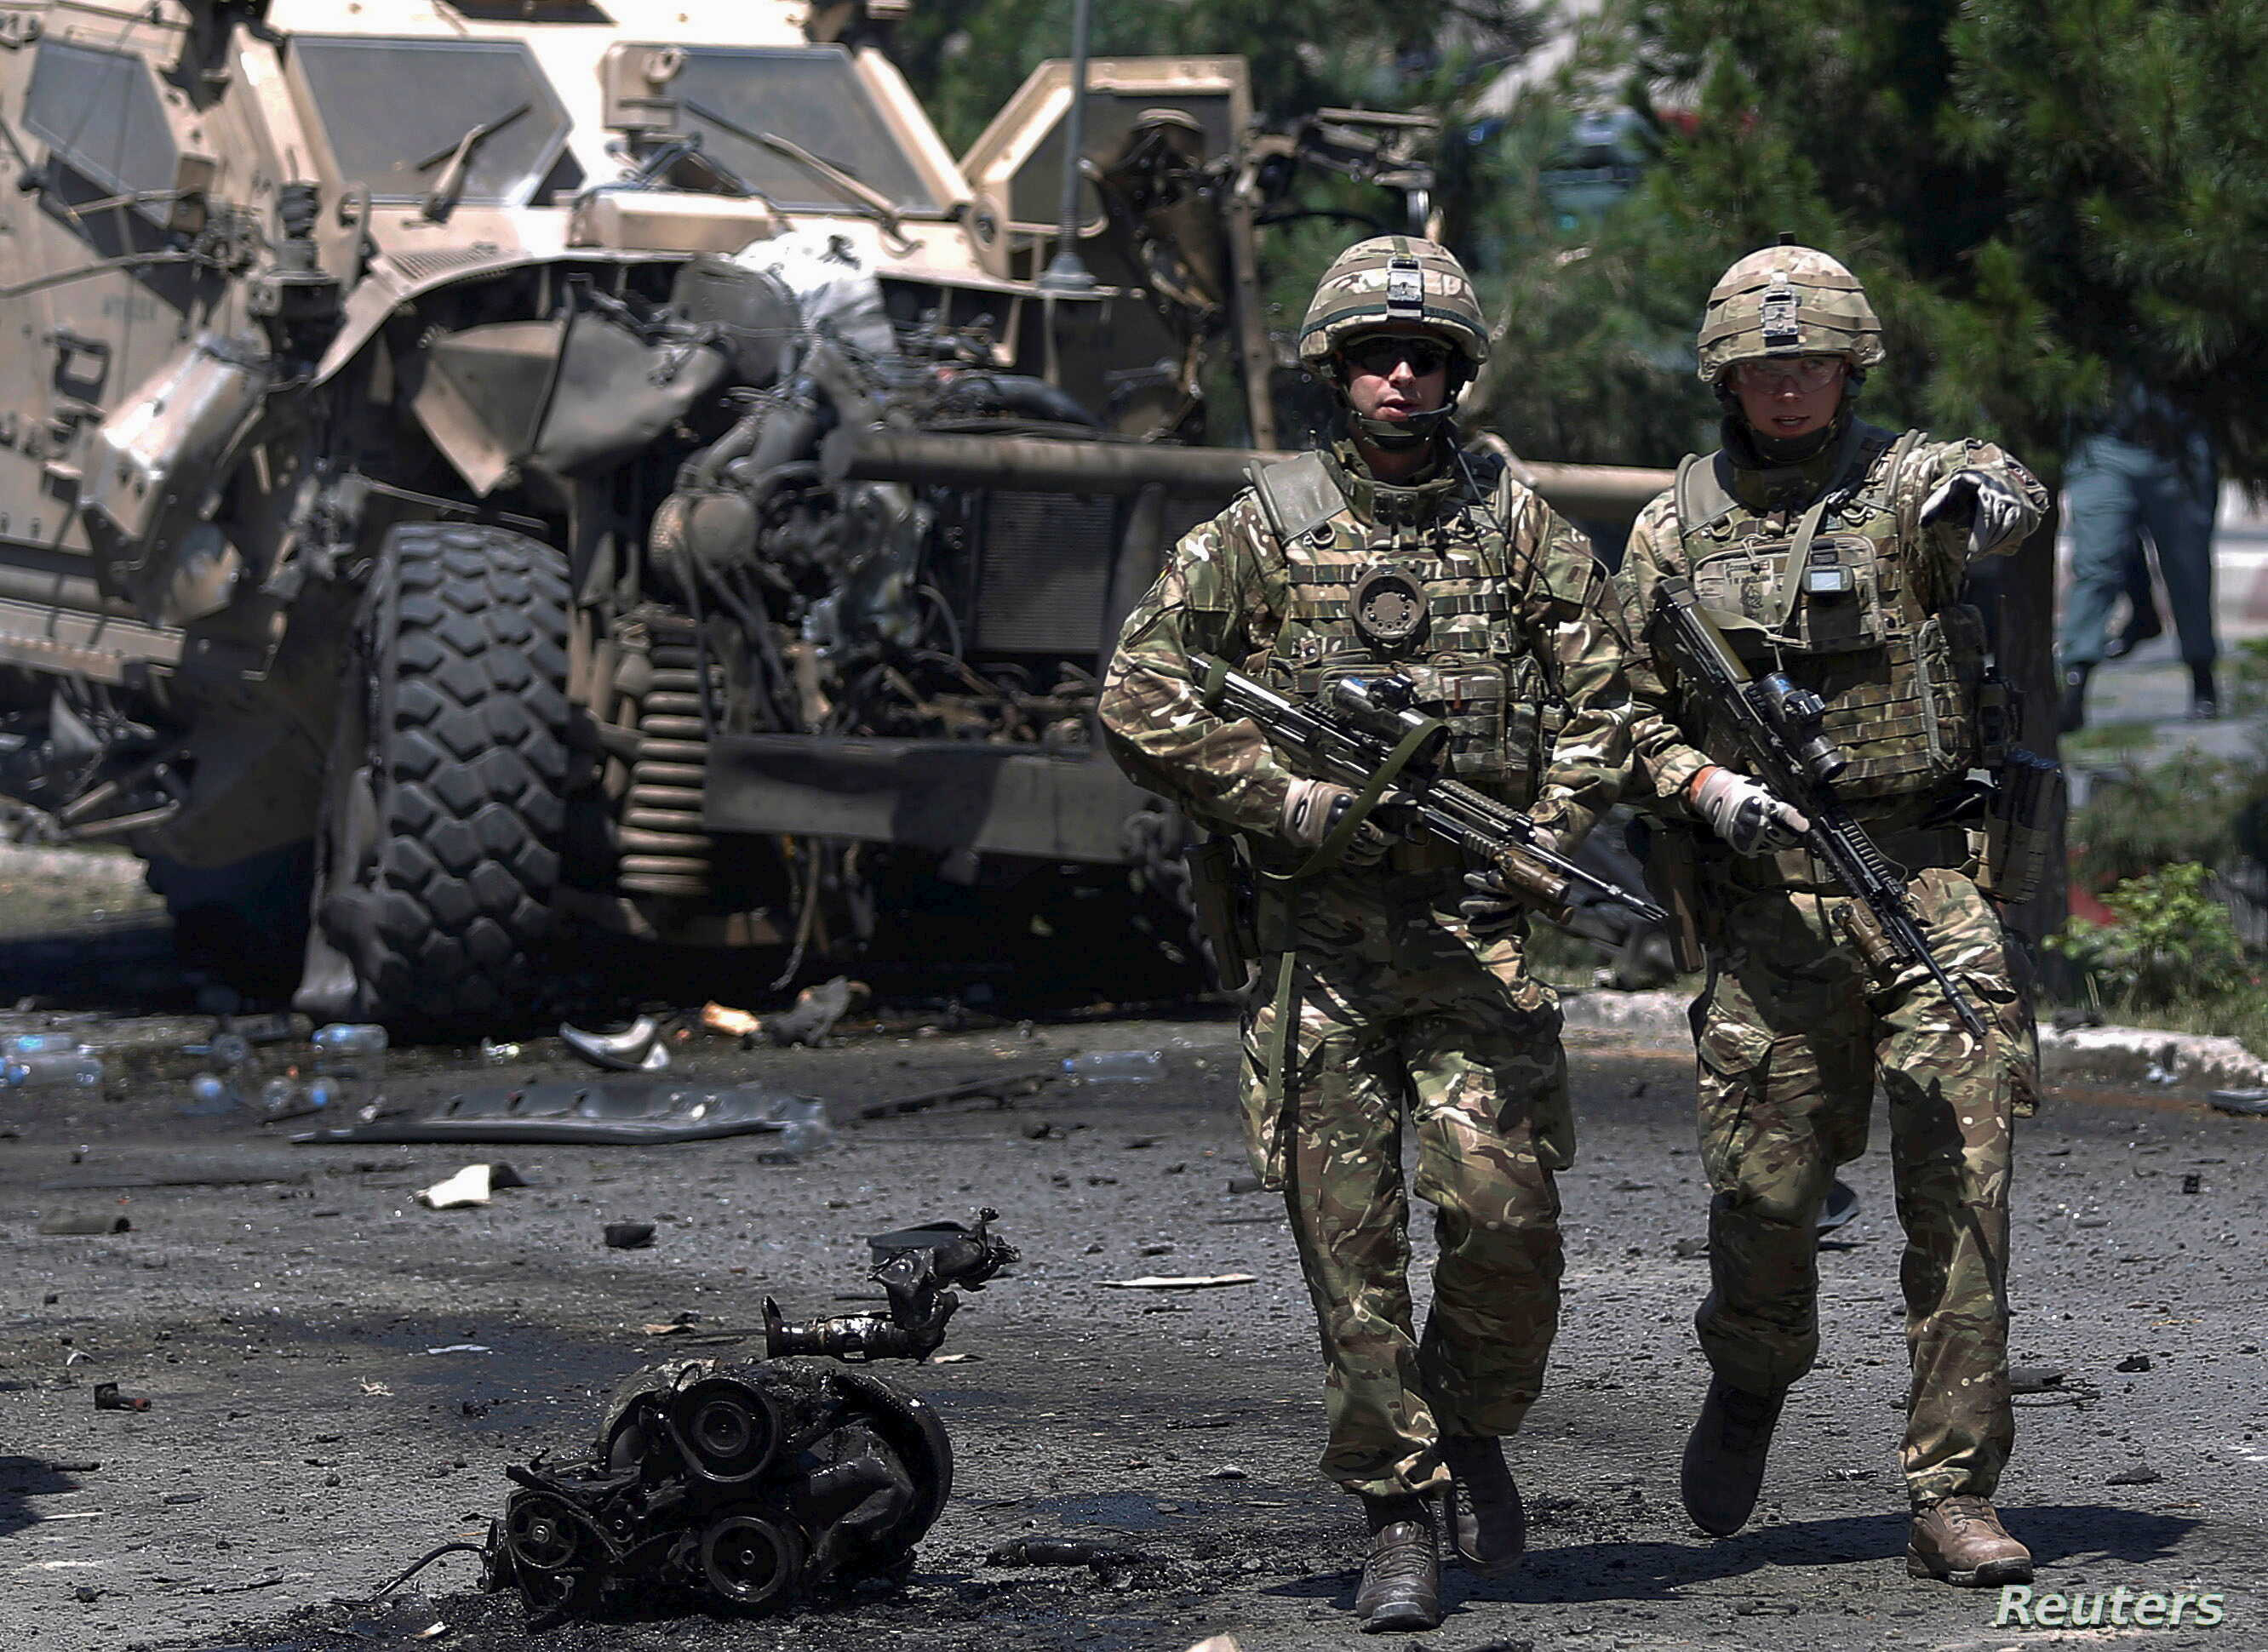 NATO soldiers walk at the site of a suicide bomb attack in Kabul, Afghanistan, June 30, 2015.